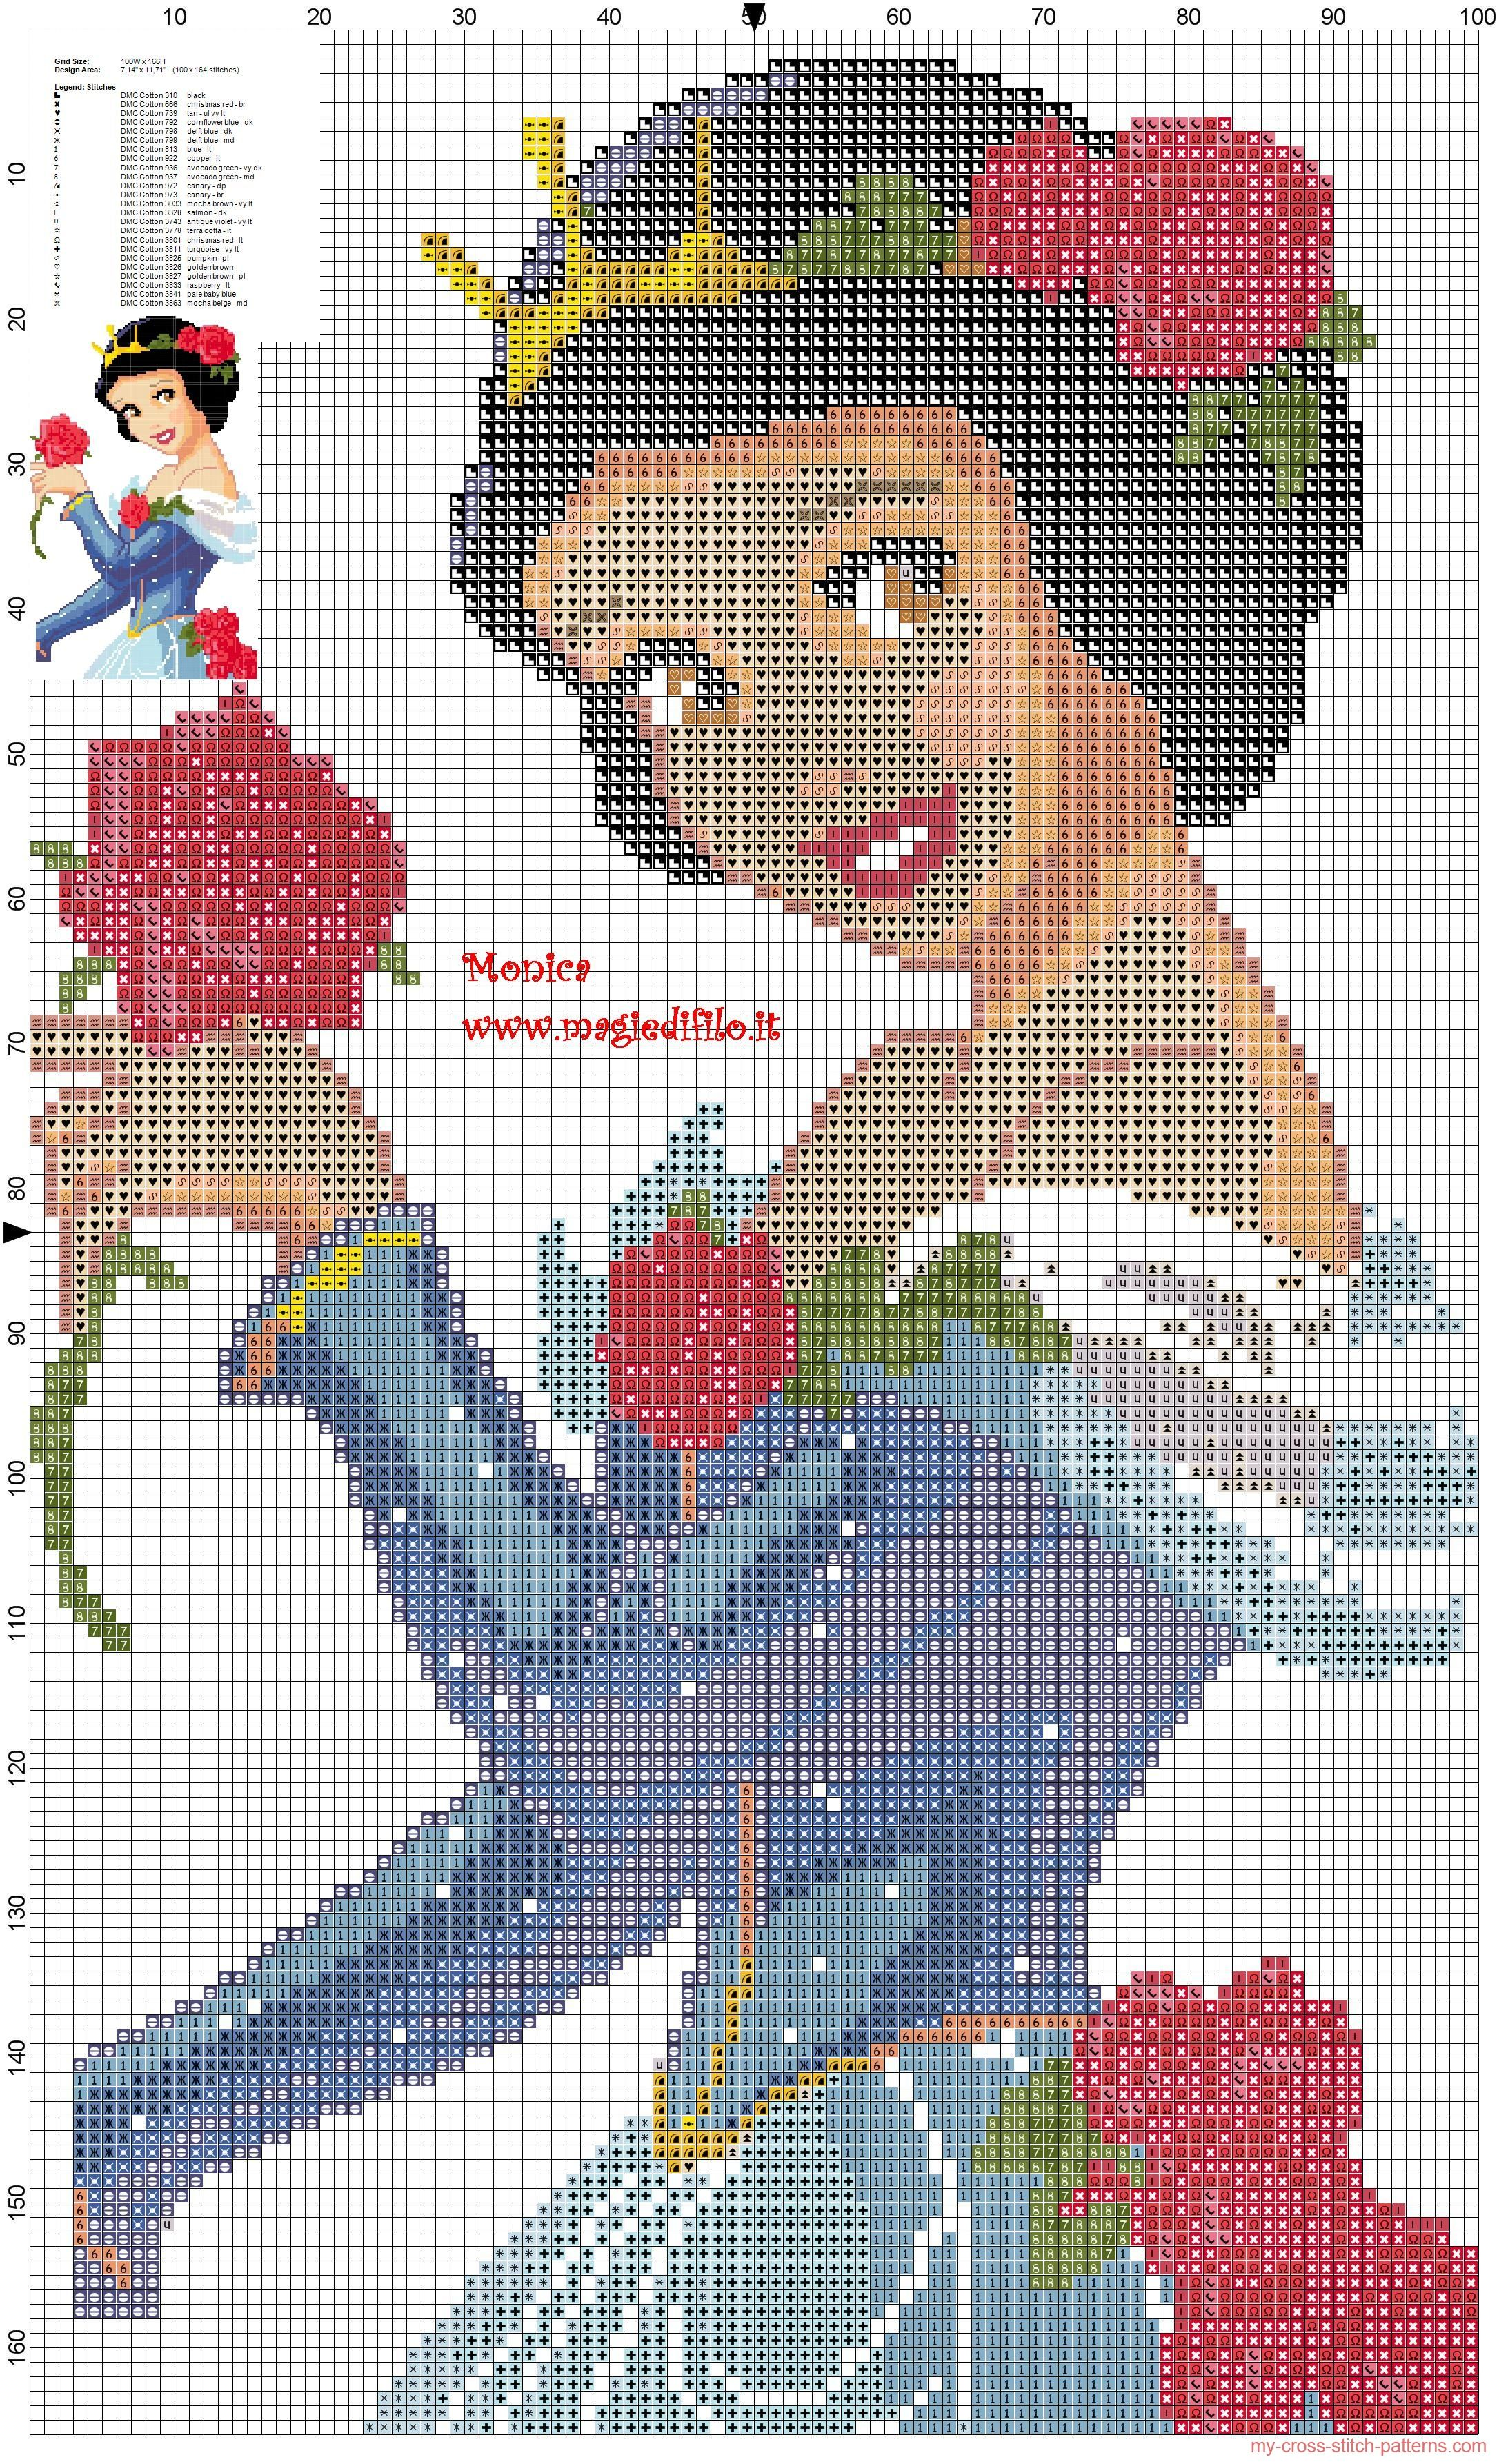 Princess Snow White cross stitch pattern | Cross stitch | Pinterest ...